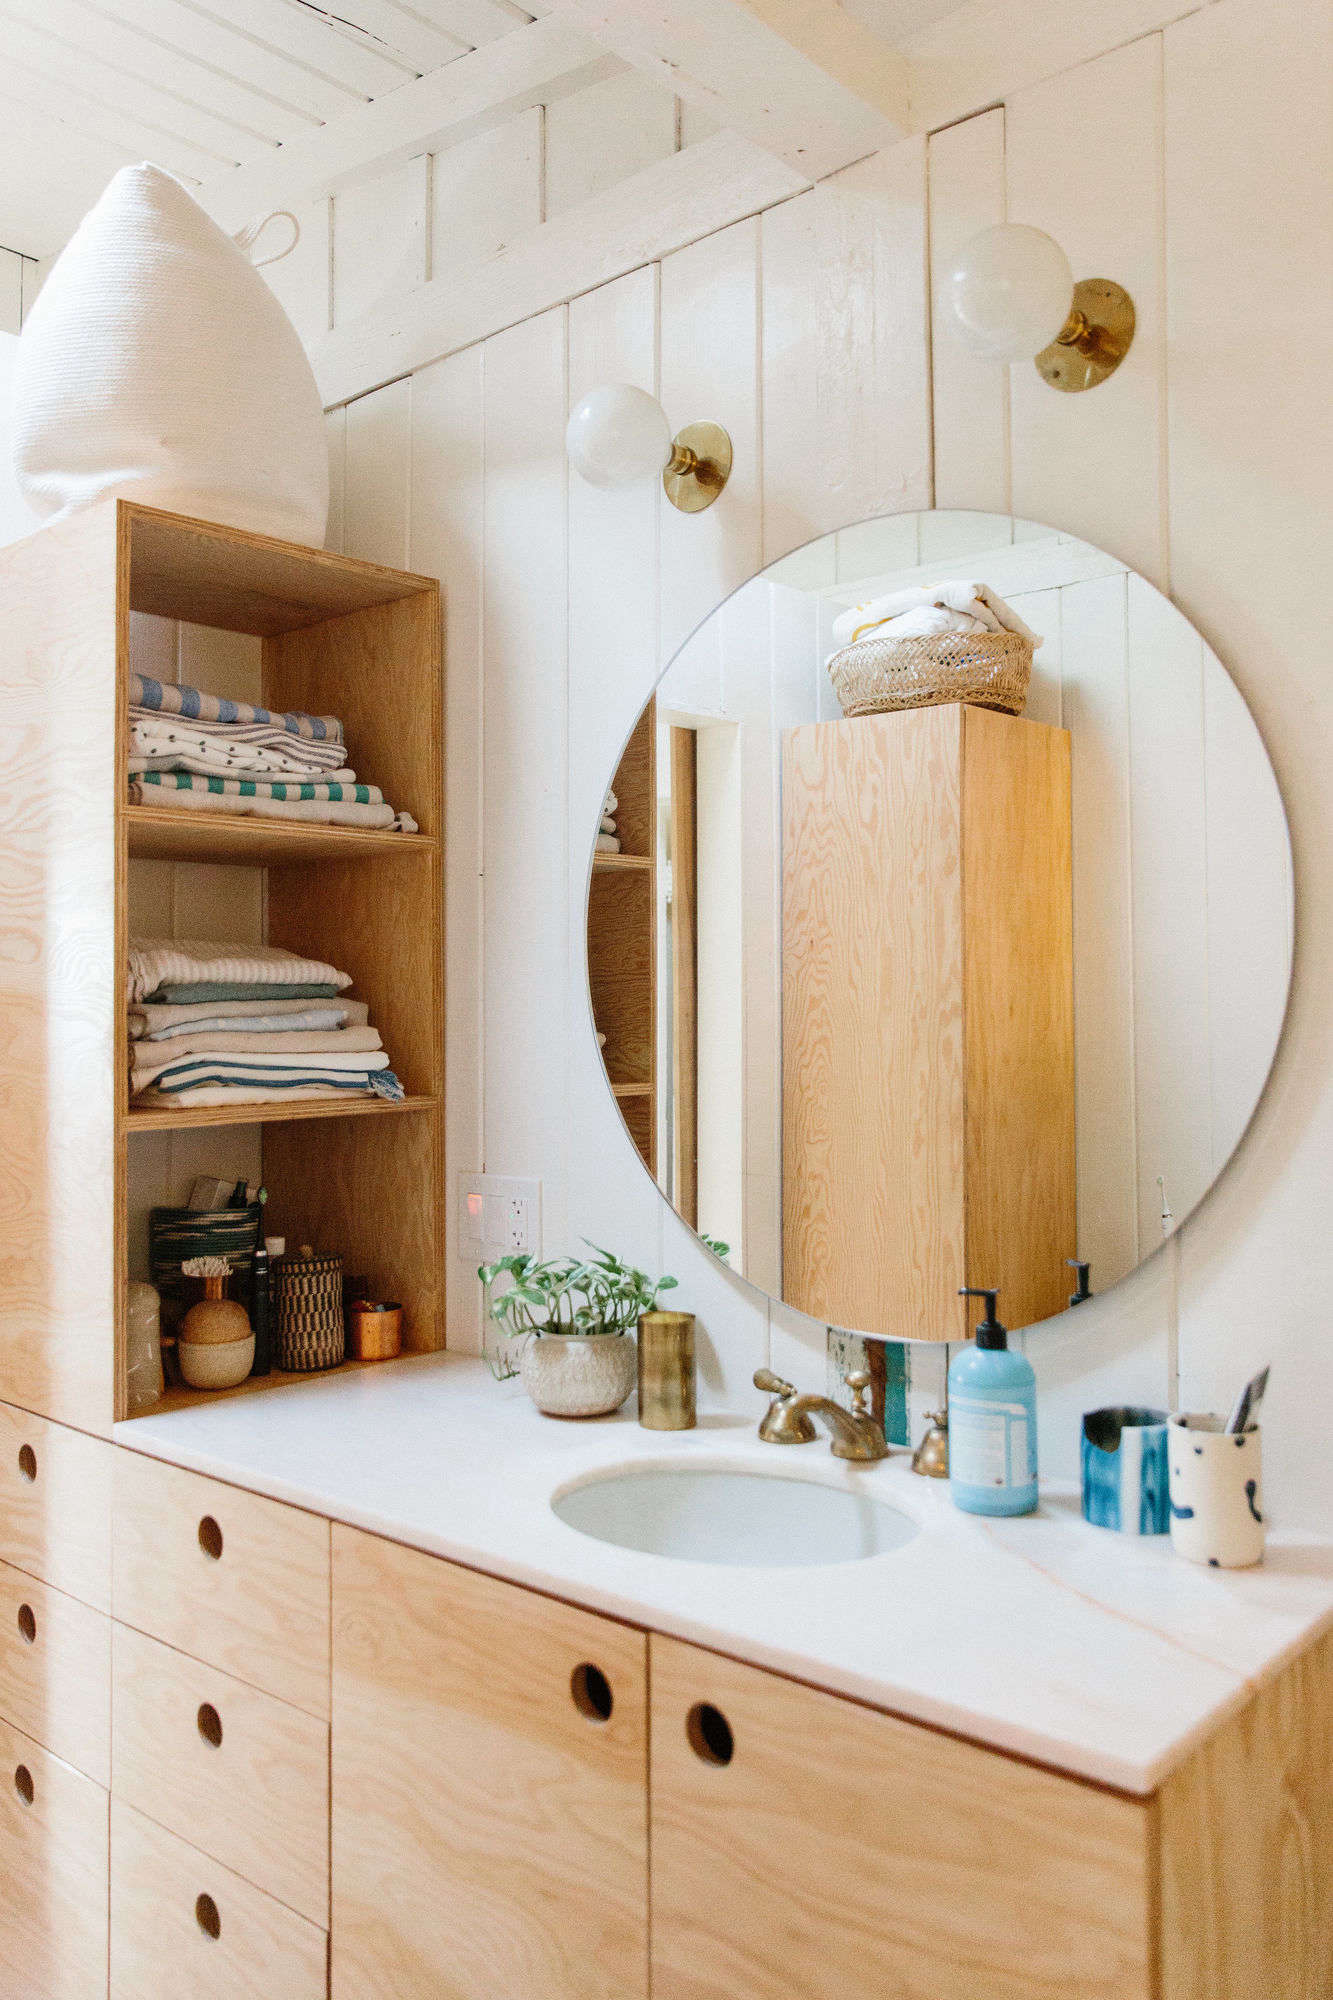 How much to fit a new bathroom - Bathroom Of The Week A Master Suite In Topanga Canyon Scribbles Included